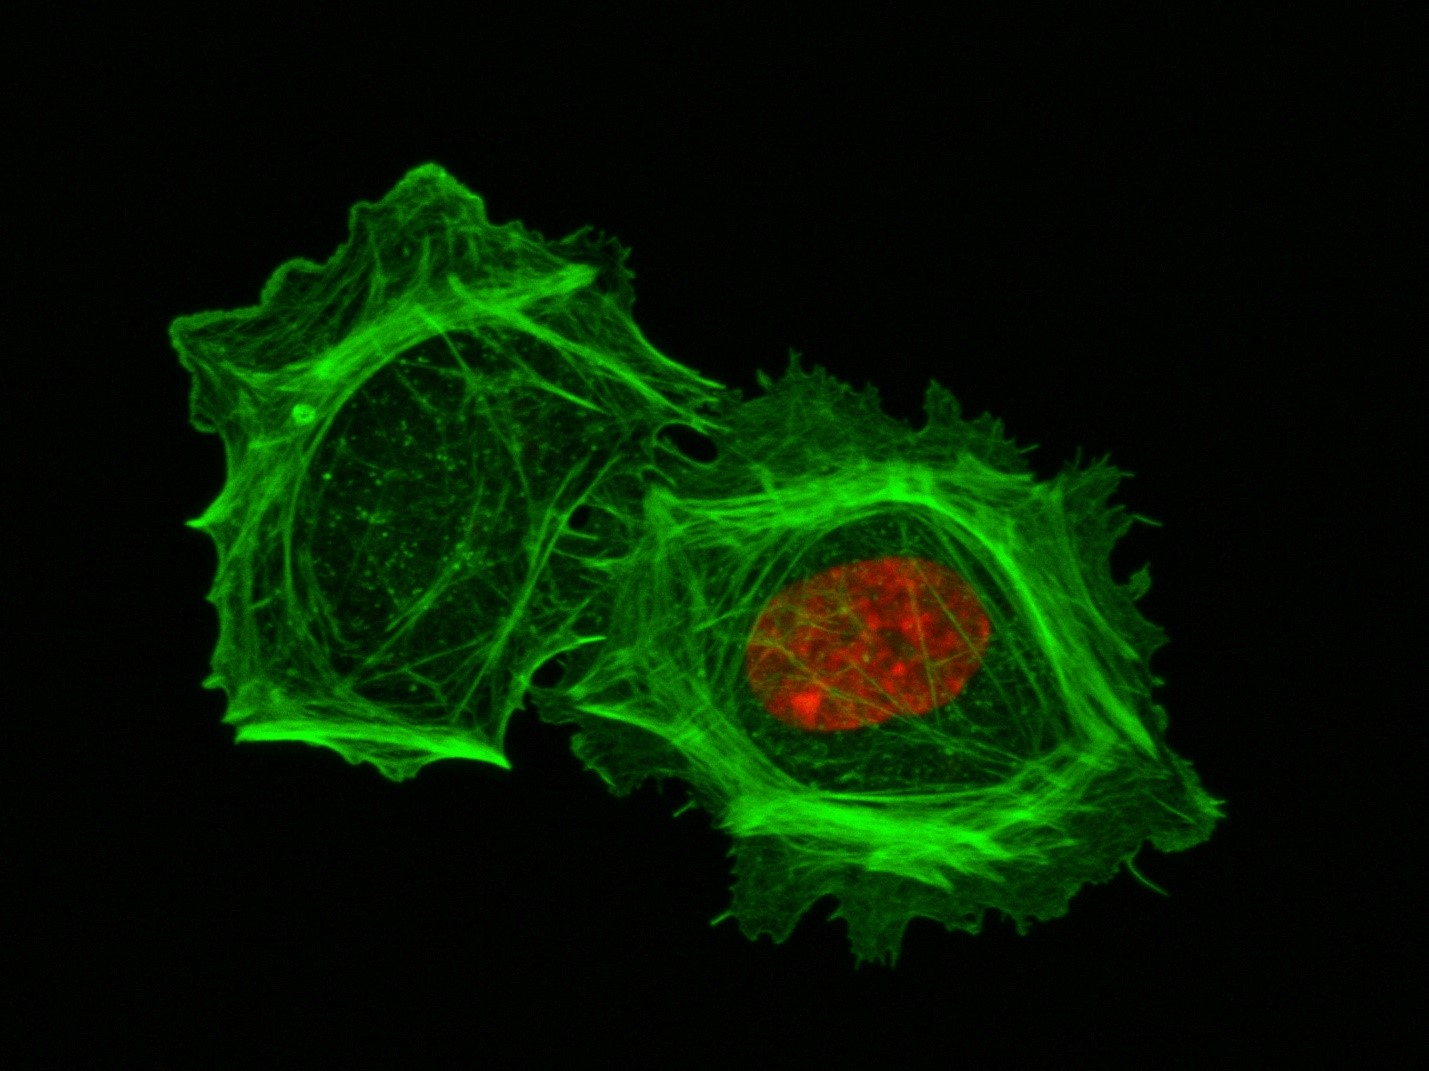 A closeup of two human cells with the cells dyed green and the necleaus dyed red.